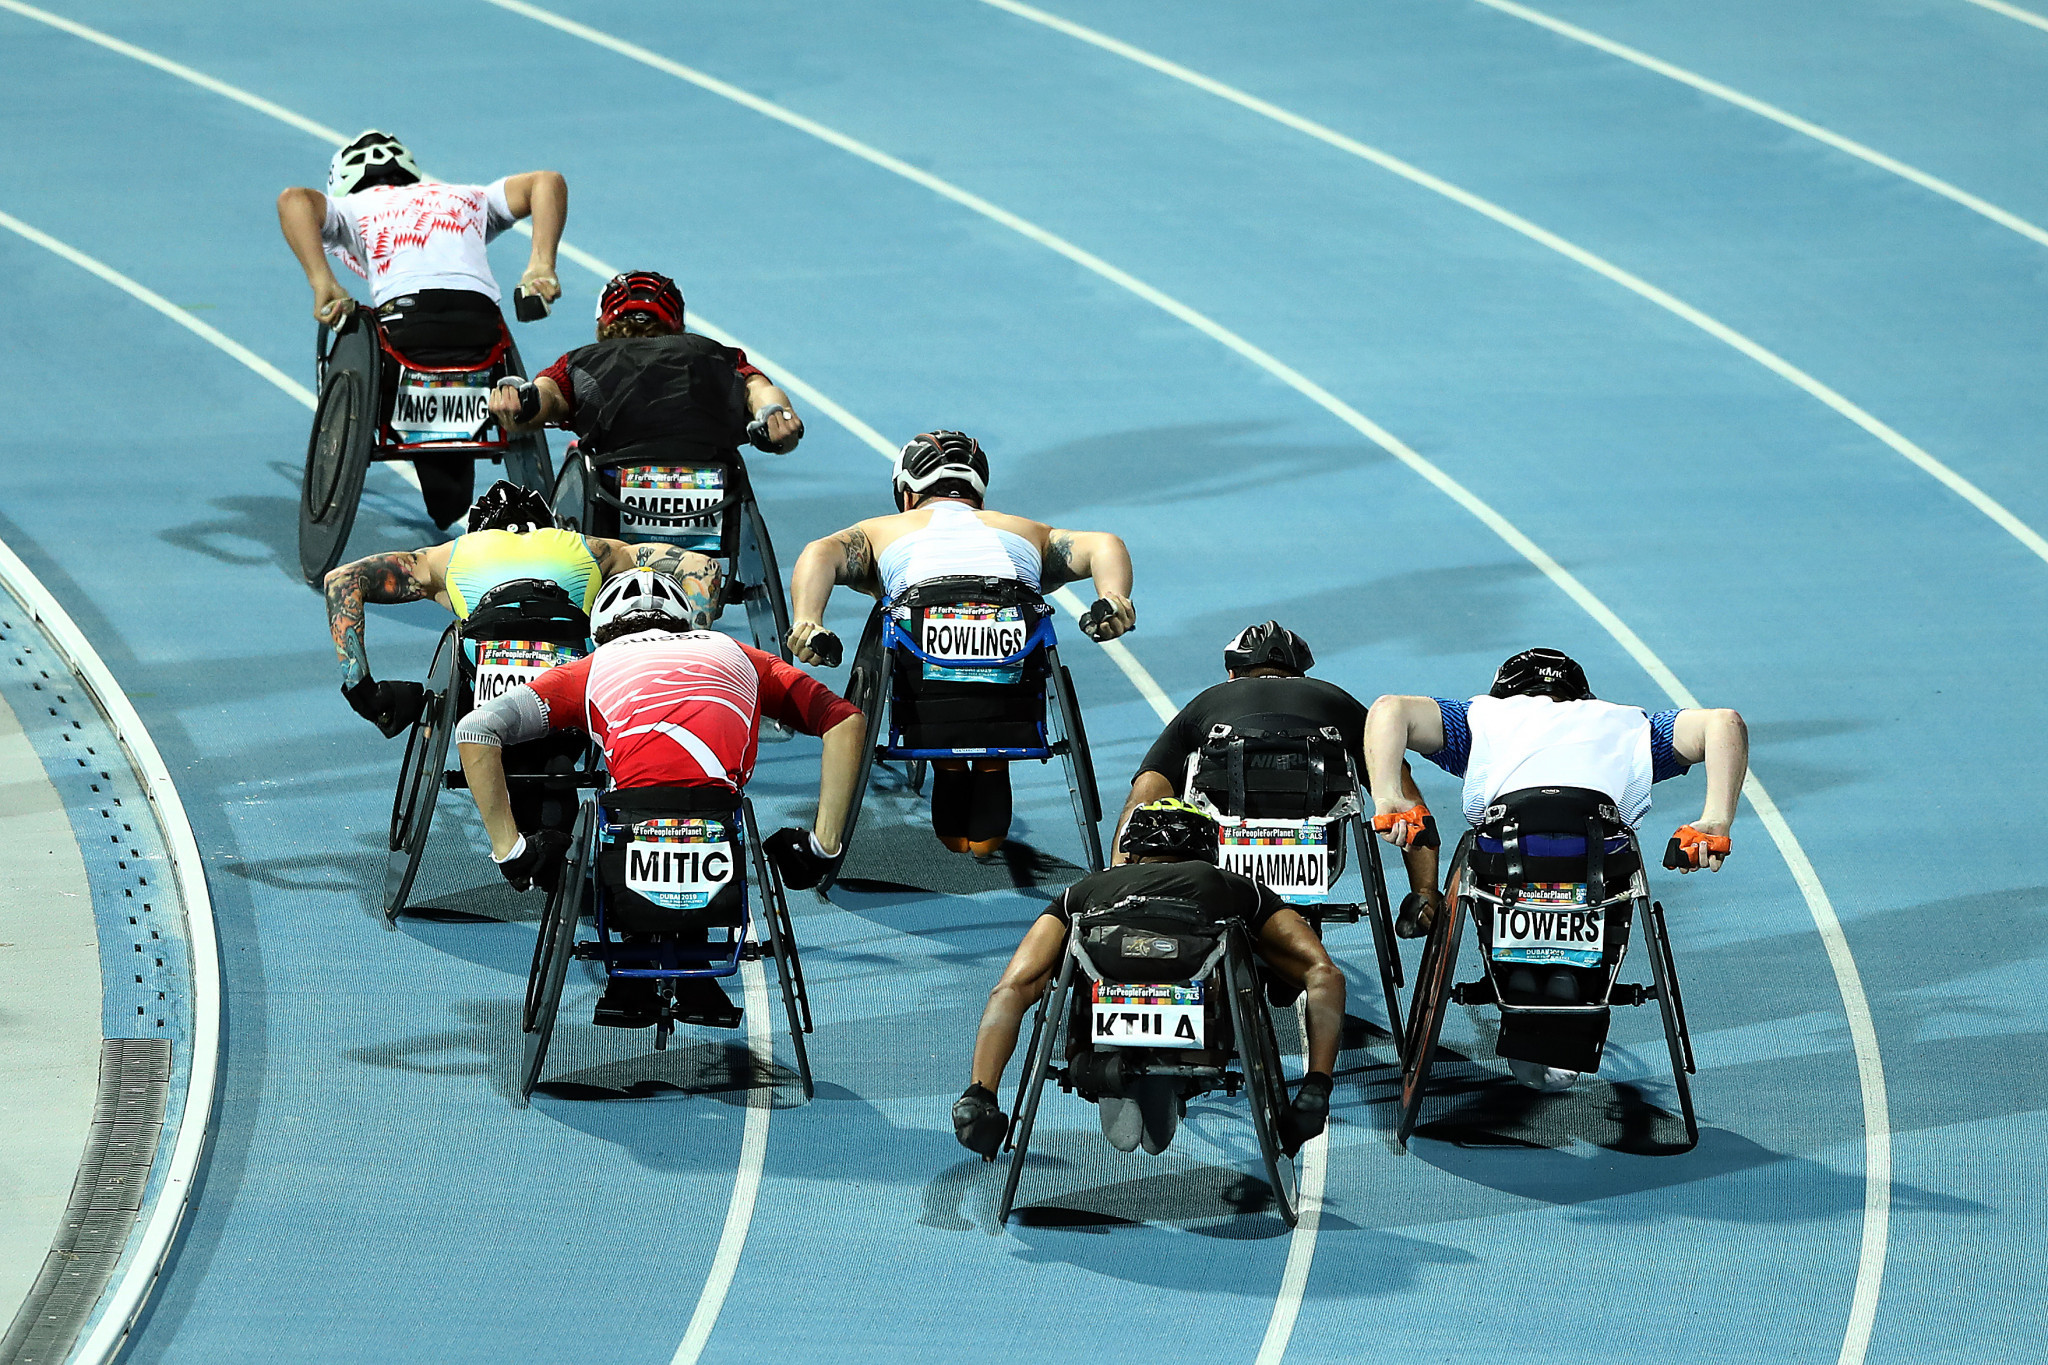 World Para Athletics open bid process for 2023 and 2025 World Championships